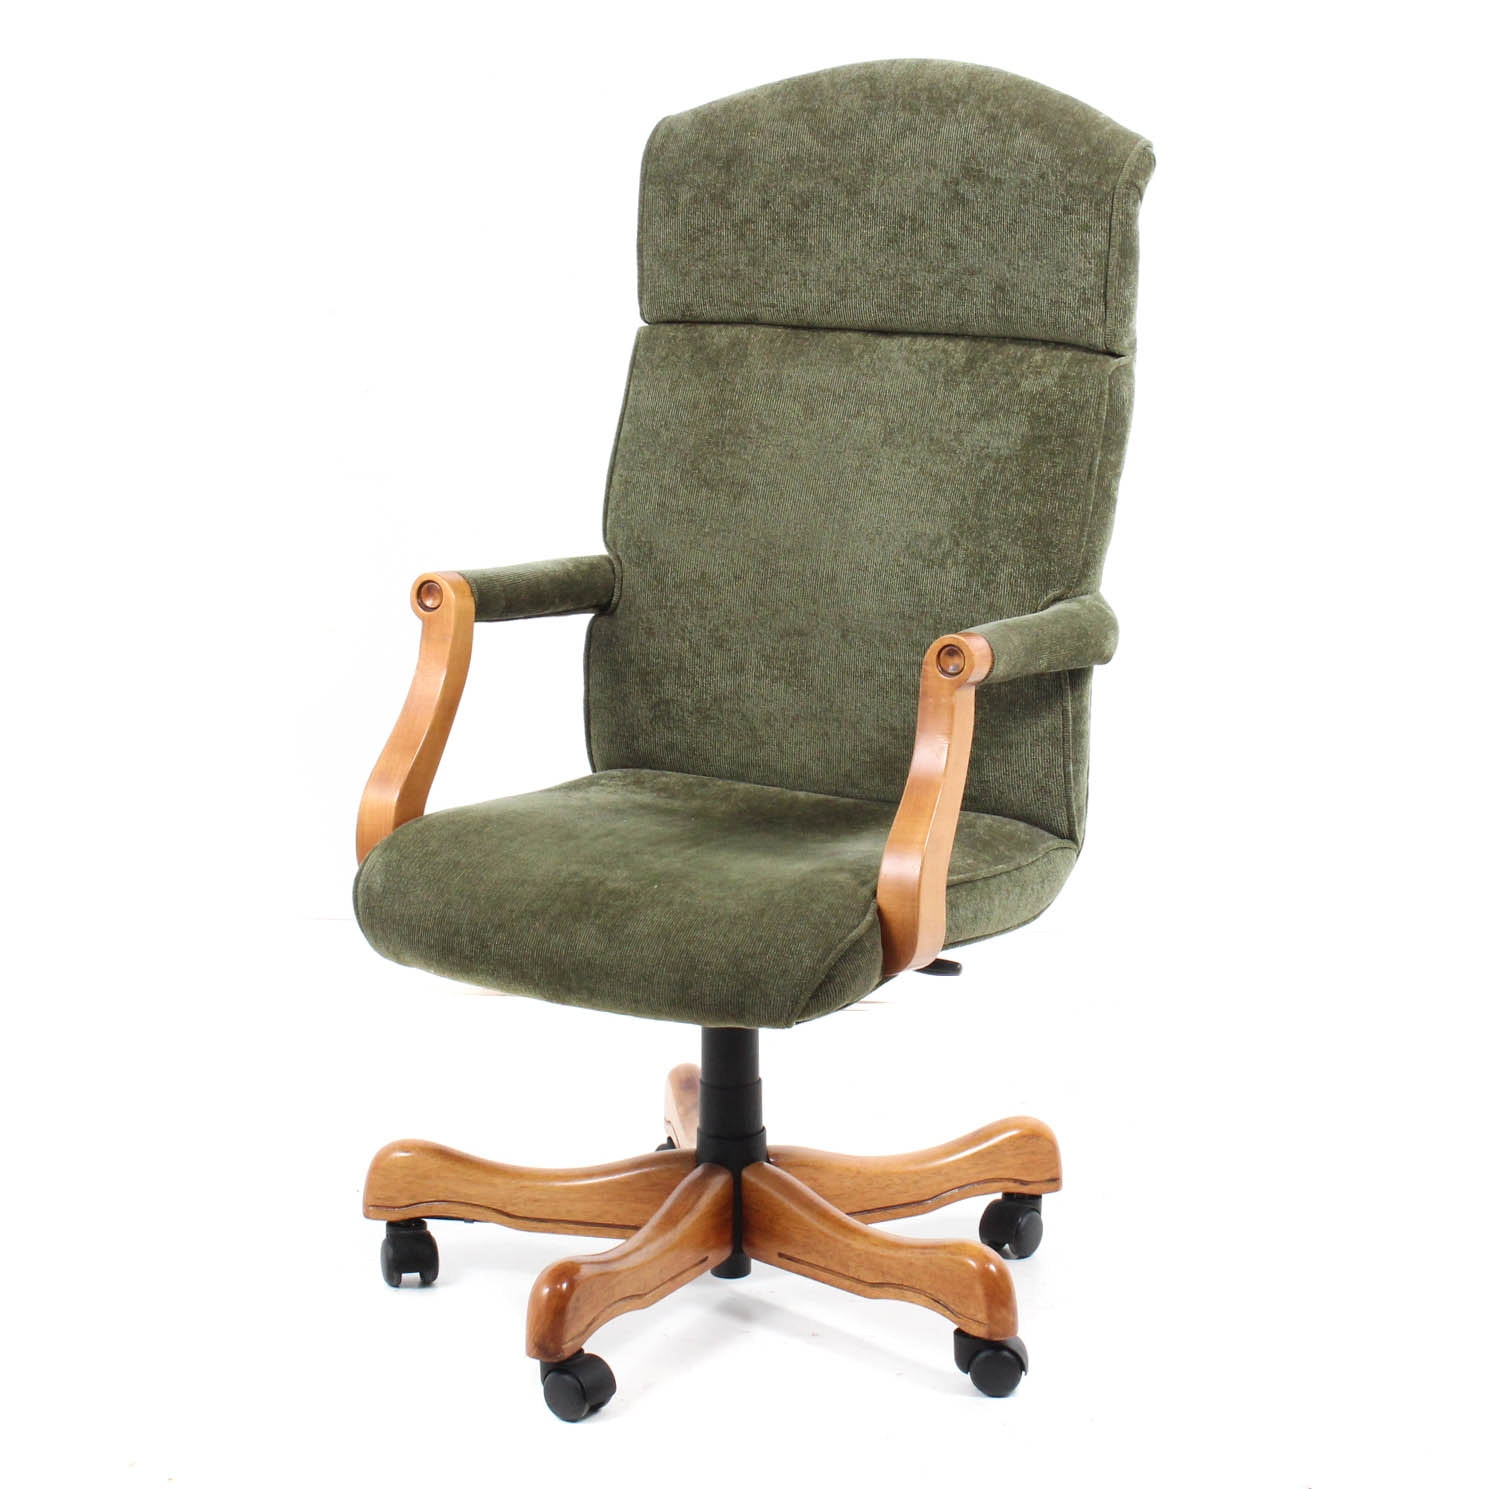 Contemporary Upholstered Office Chair